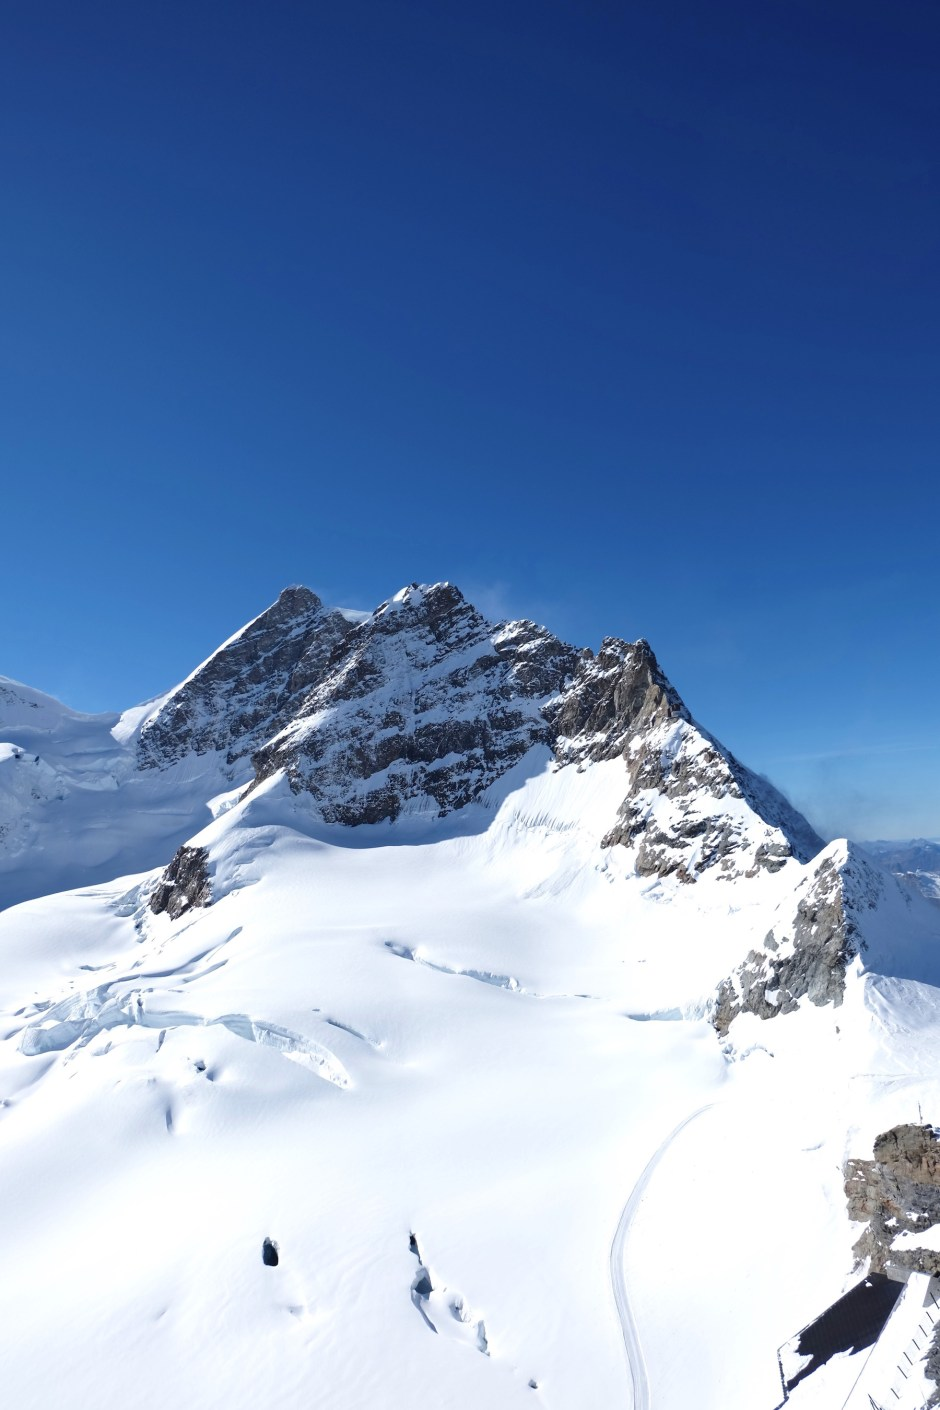 View 2 from Jungfraujoch